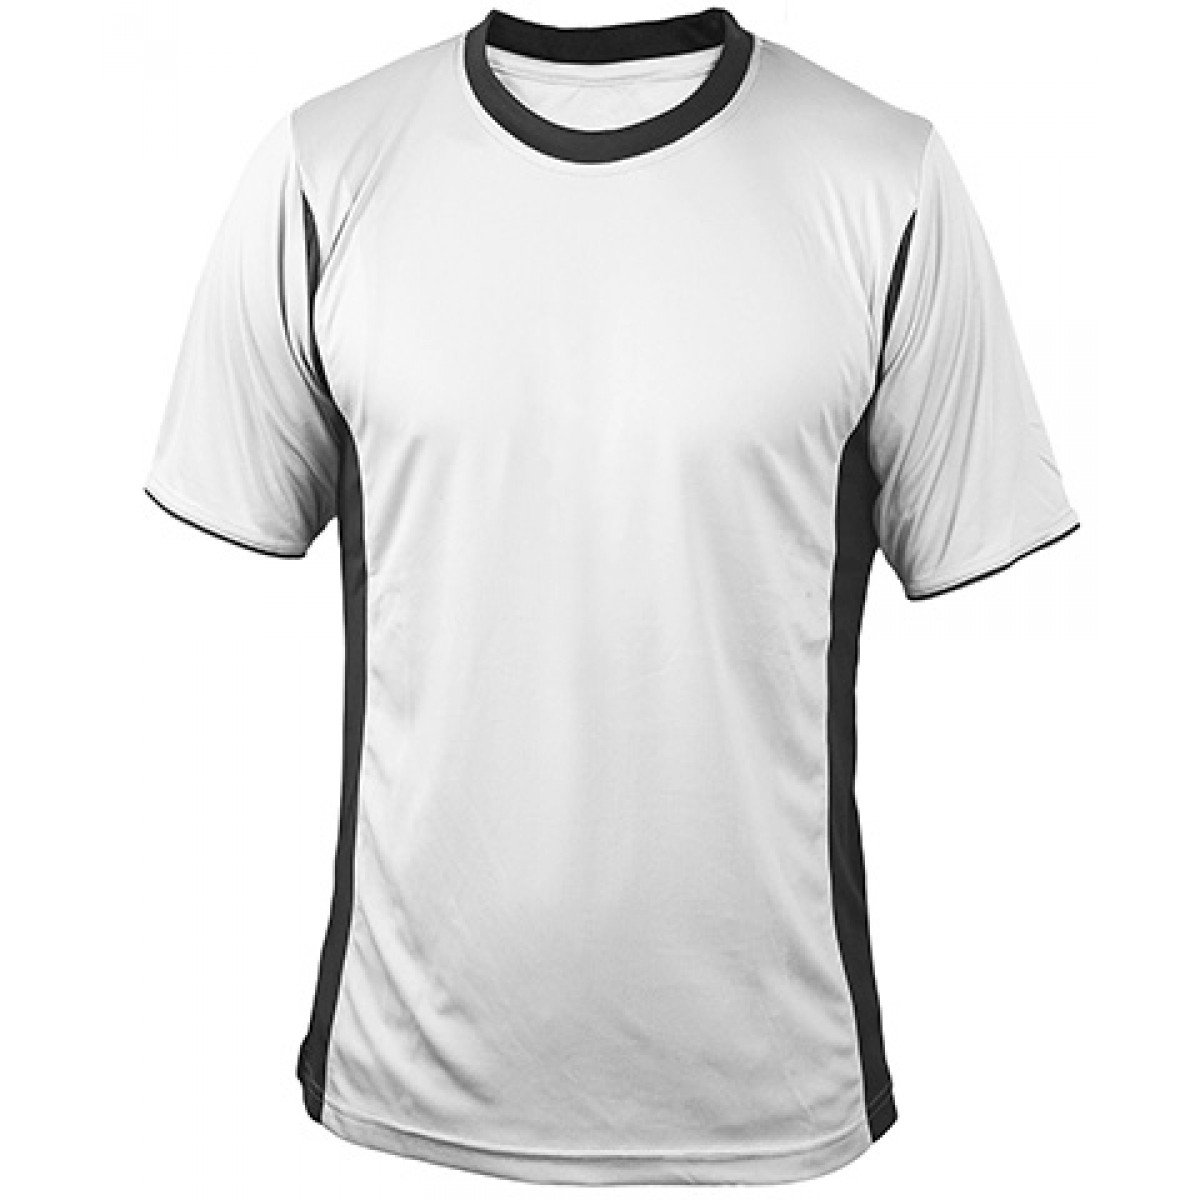 White Short Sleeves Performance With Black Side Insert-Black-M